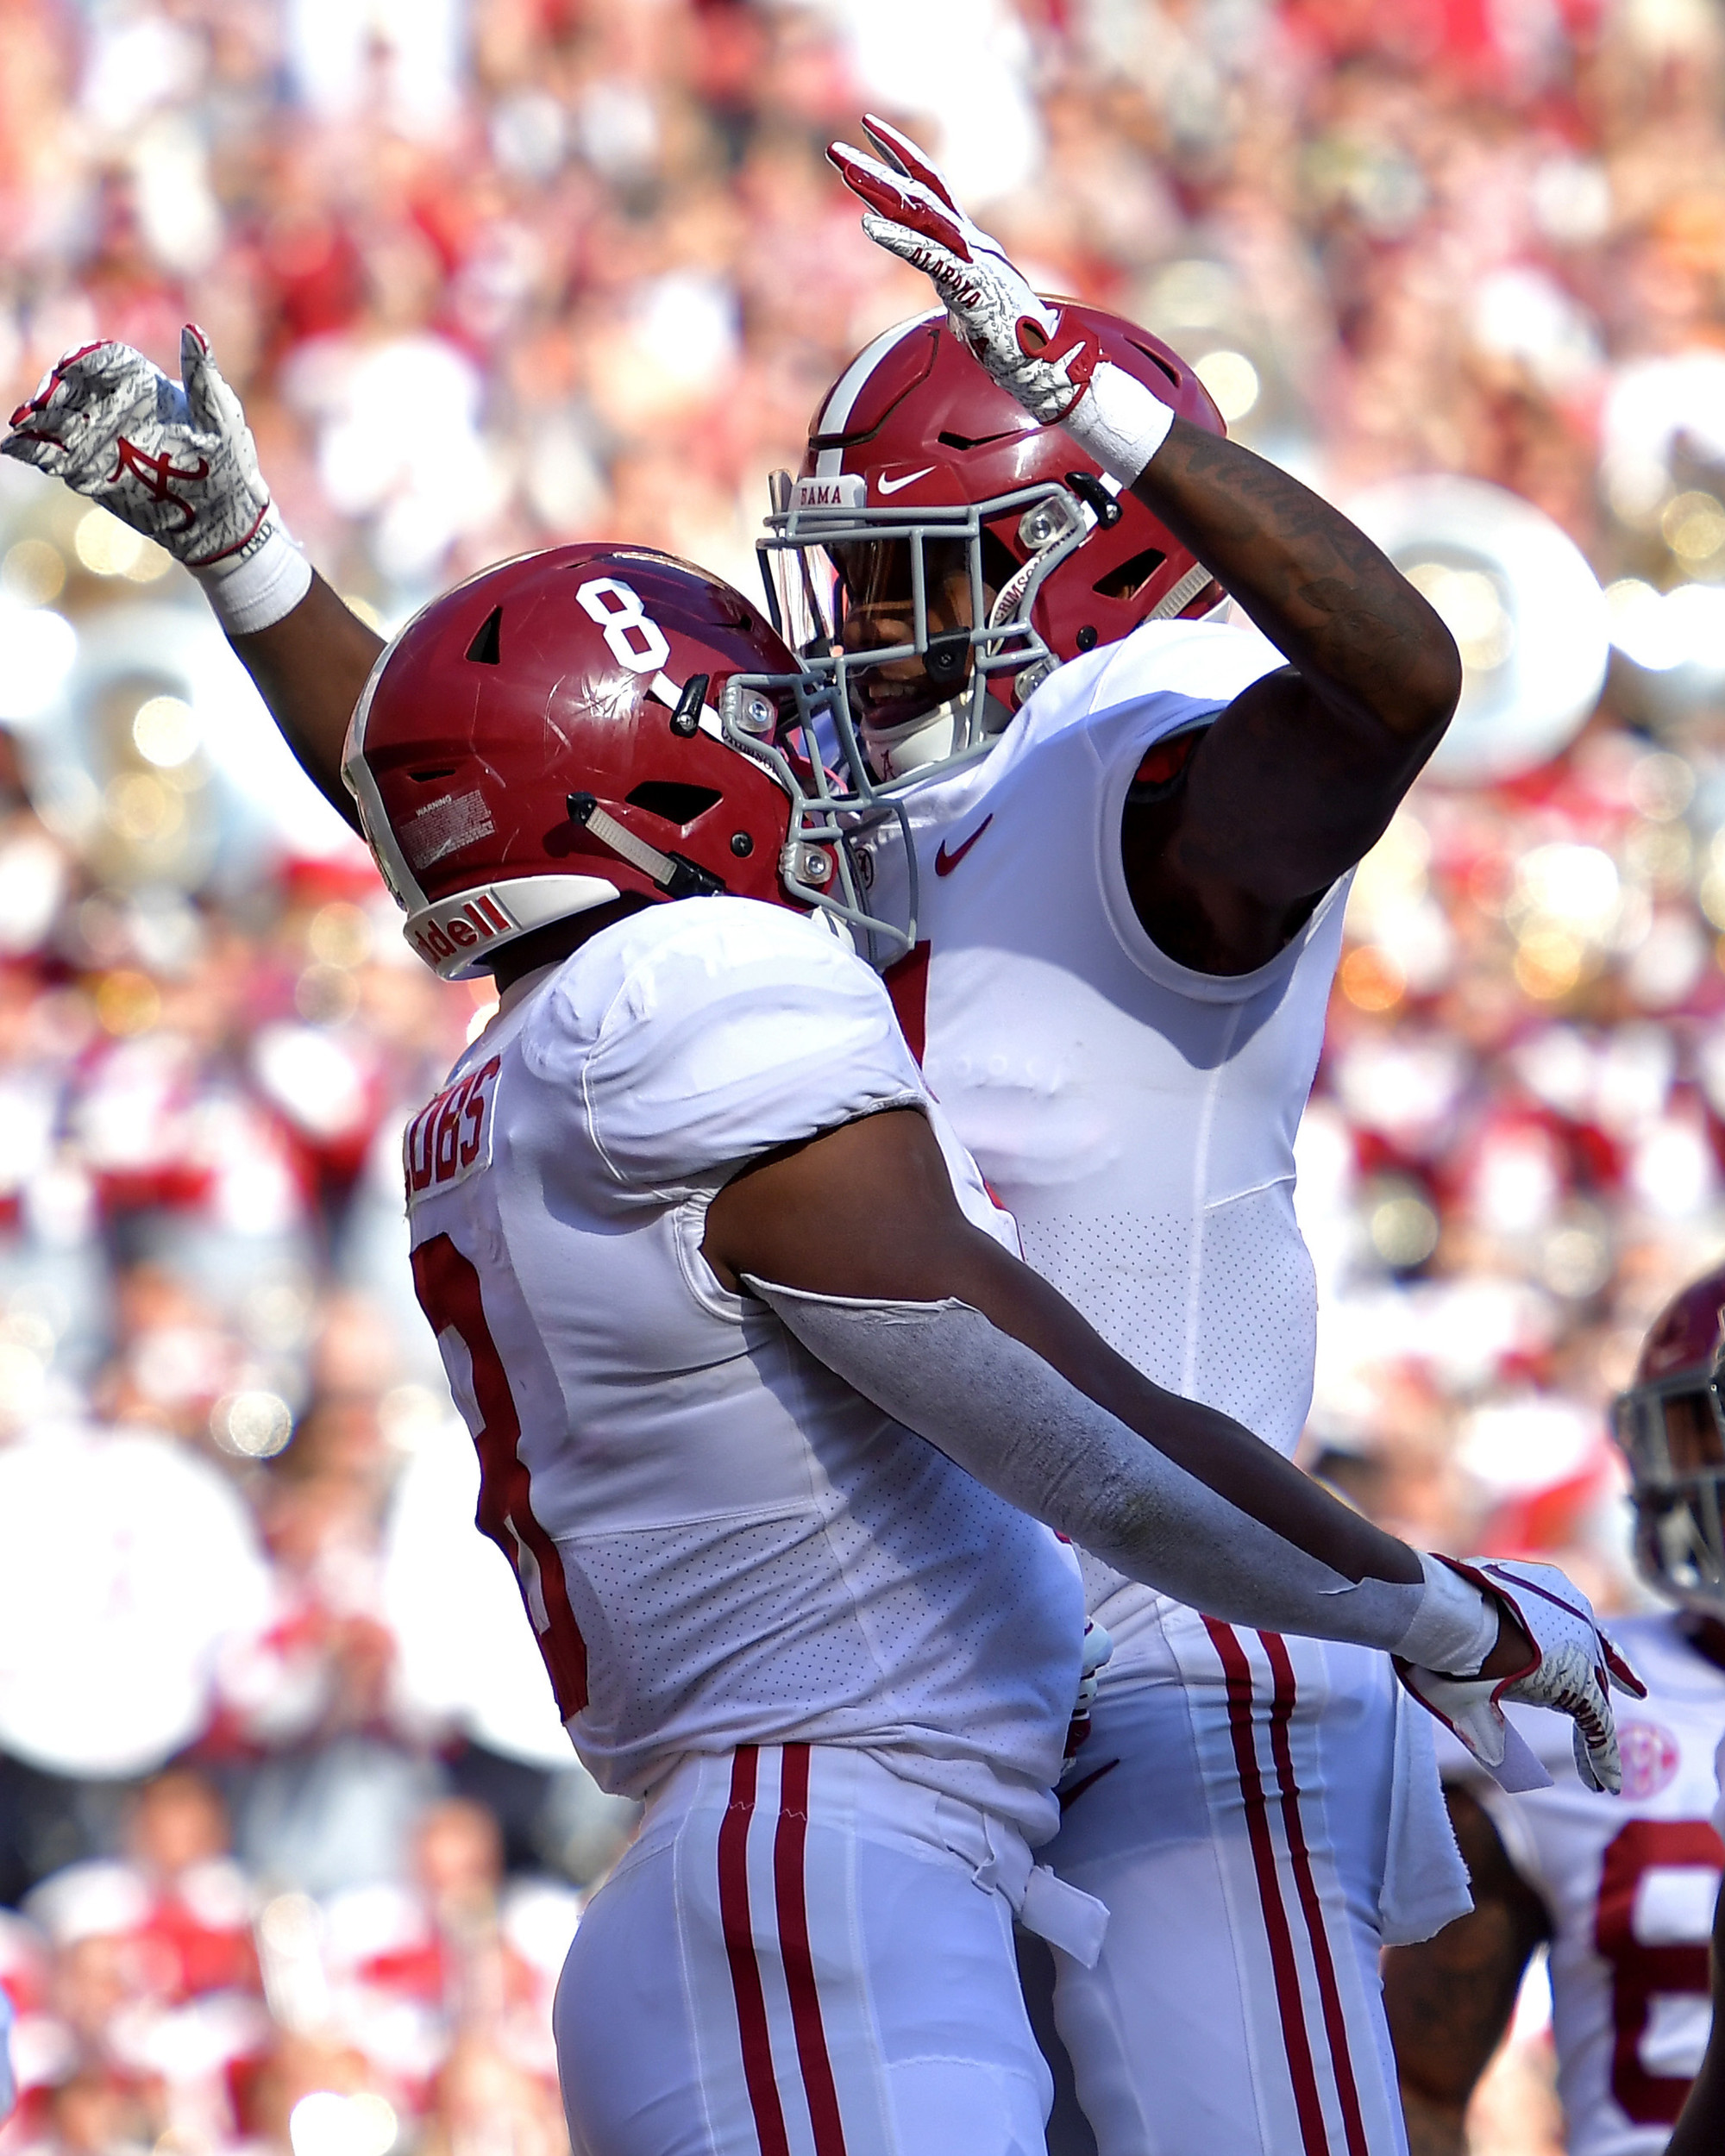 Alabama Crimson Tide running back Josh Jacobs (8) celebrates a touchdown in the first quarter of the Alabama at Tennessee NCAA football game on Saturday, Oct. 20, 2018, at Neyland Stadium in Knoxville. Tenn. Alabama wins 58-21. (Photo by Lee Walls)